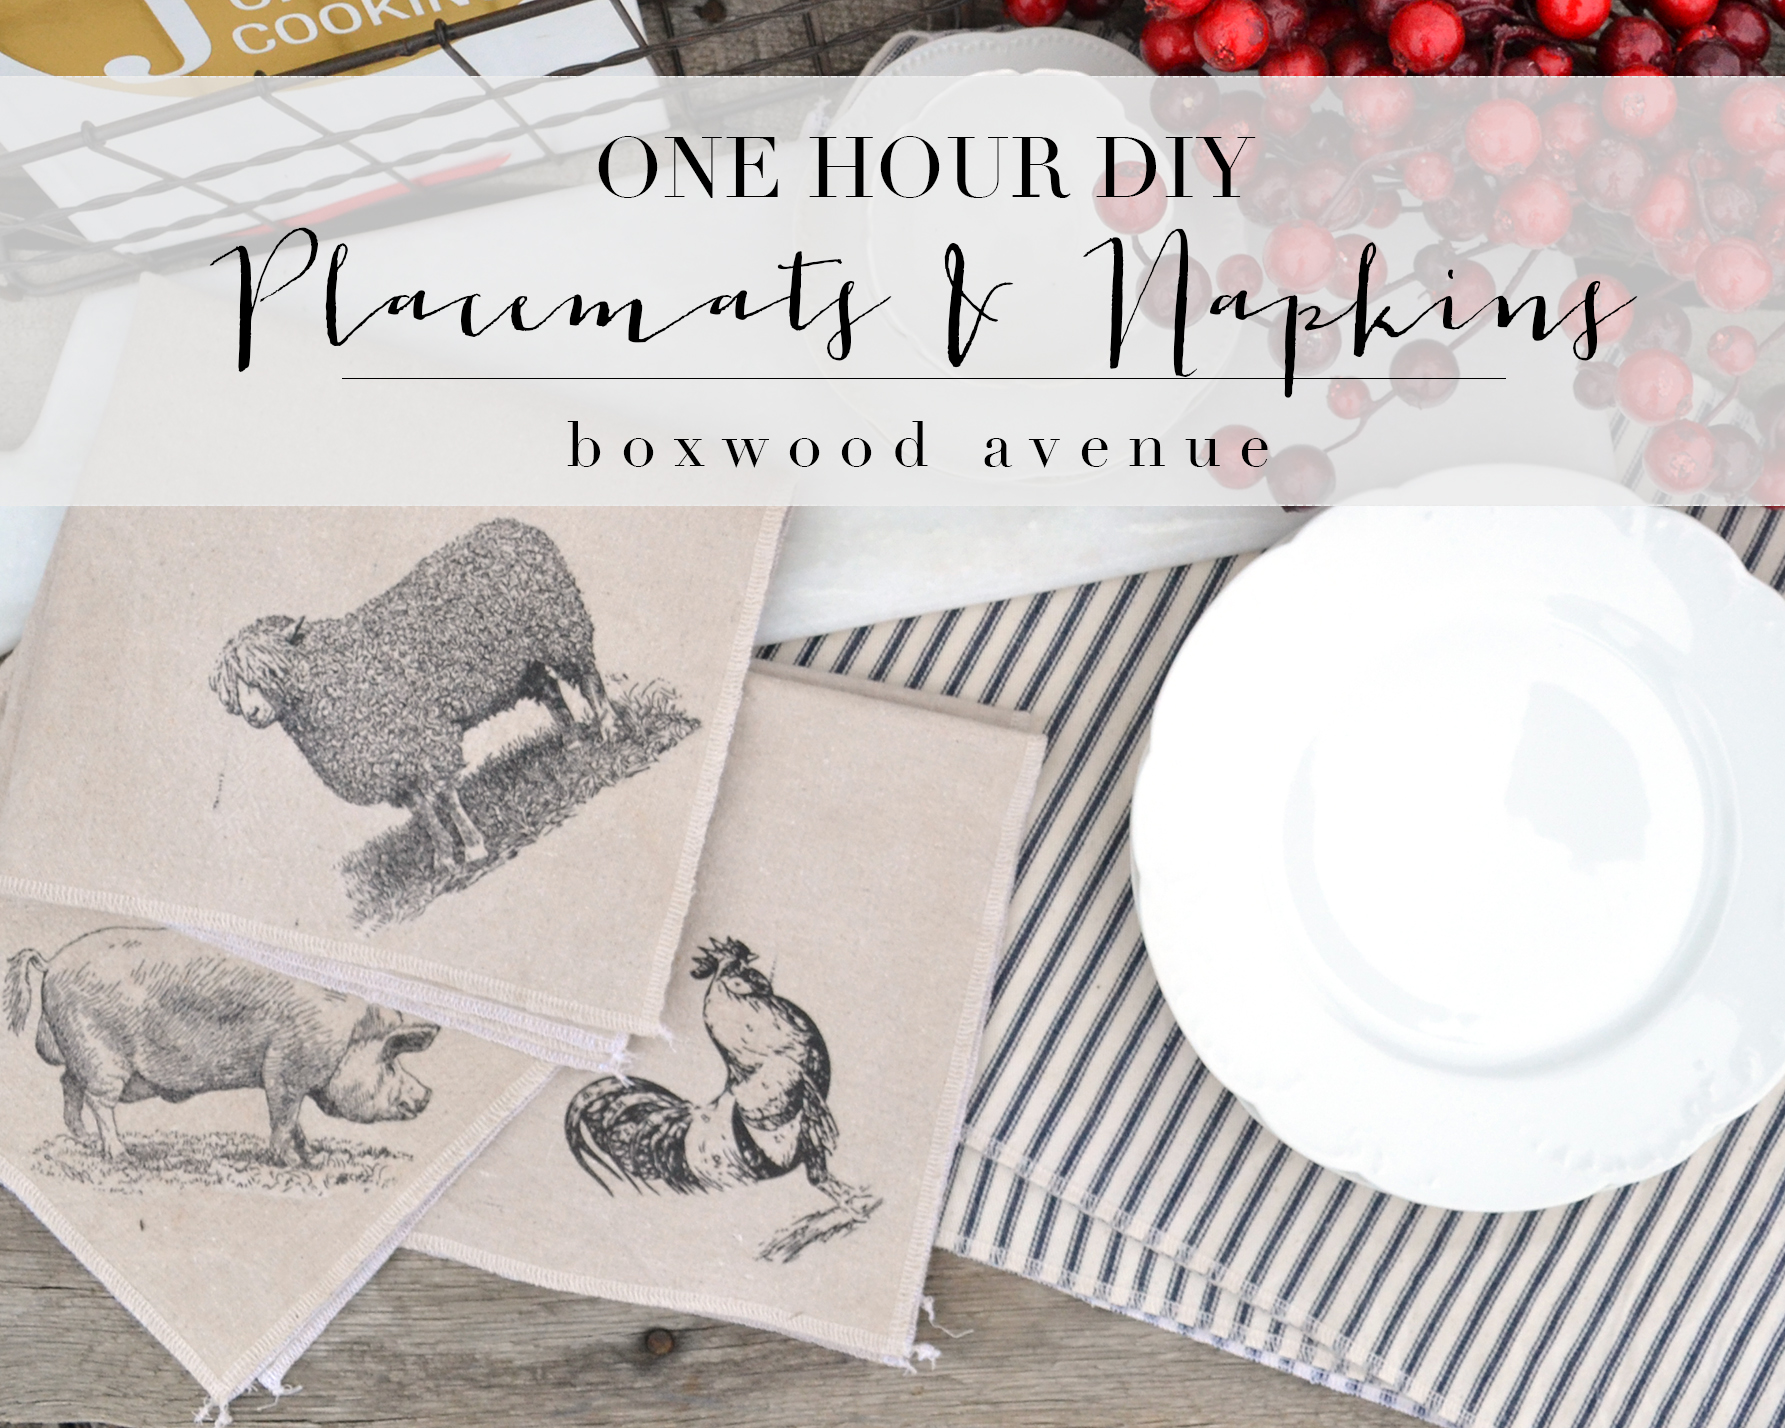 Boxwood Avenue | One Hour DIY Placemats and Napkins #shabby #tickingstripe